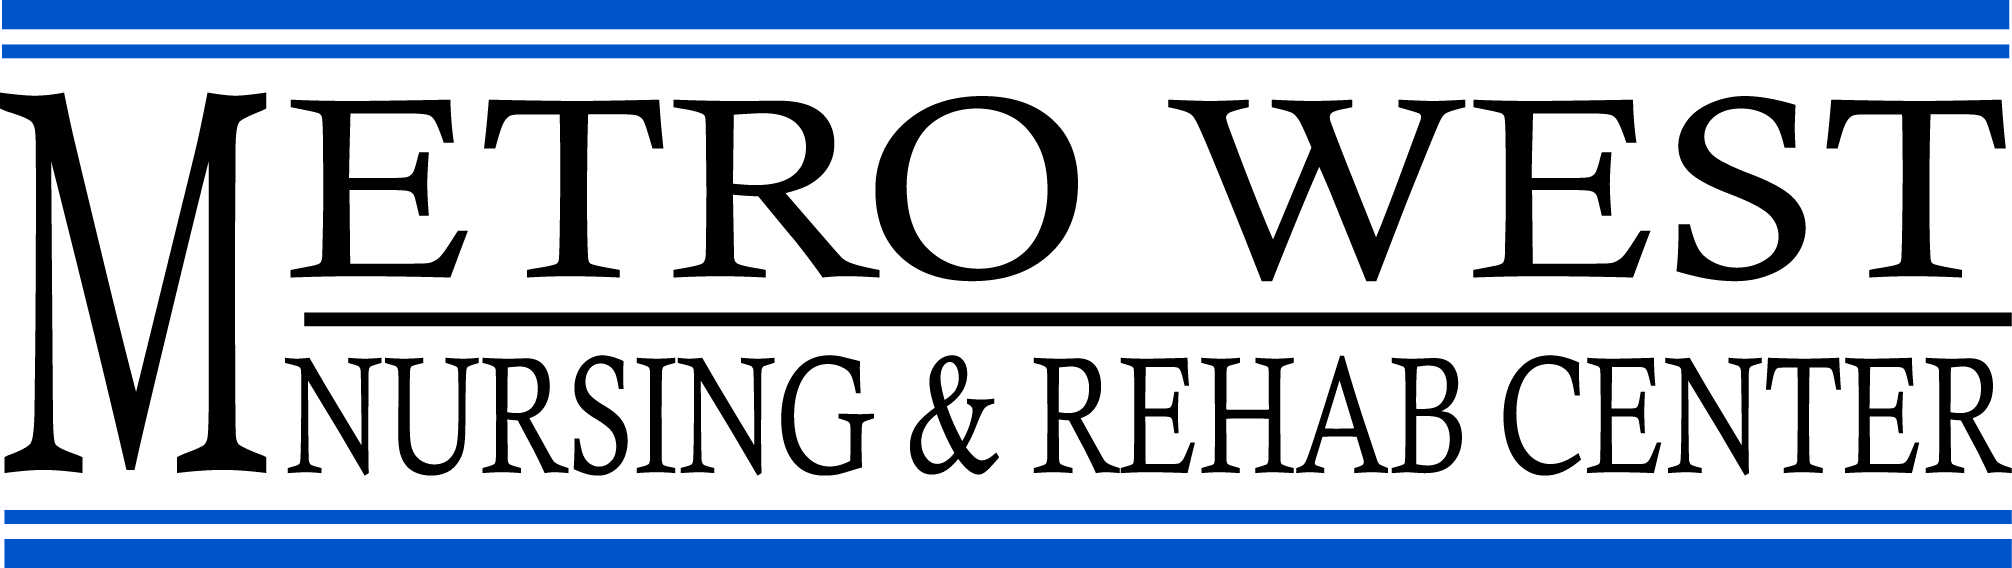 Metro West Nursing and Rehab Center logo